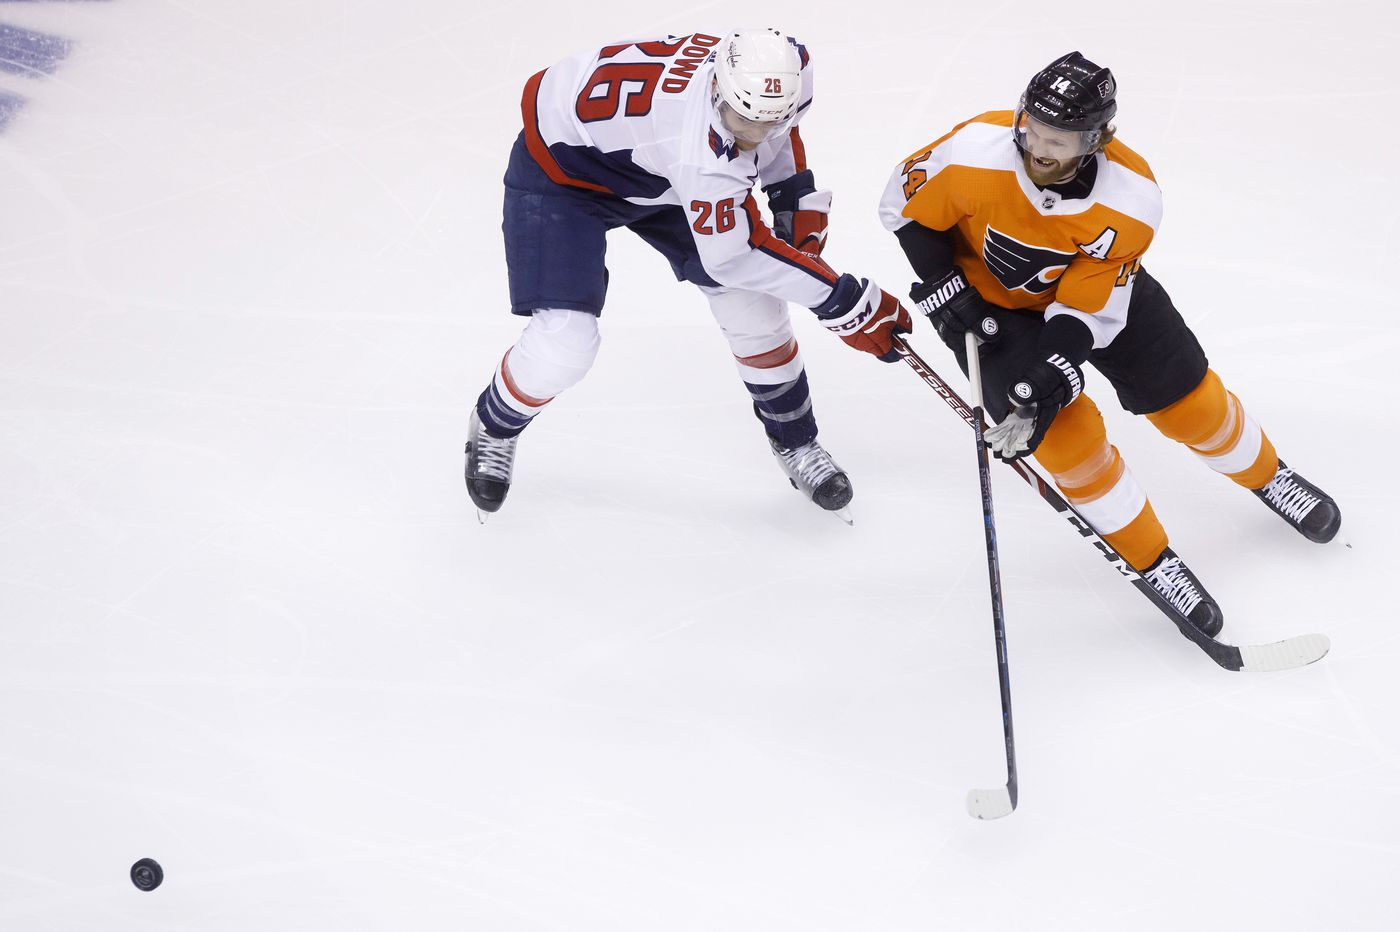 Flyers' top line helps shut down Alex Ovechkin and Co. in 3-1 victory over Capitals